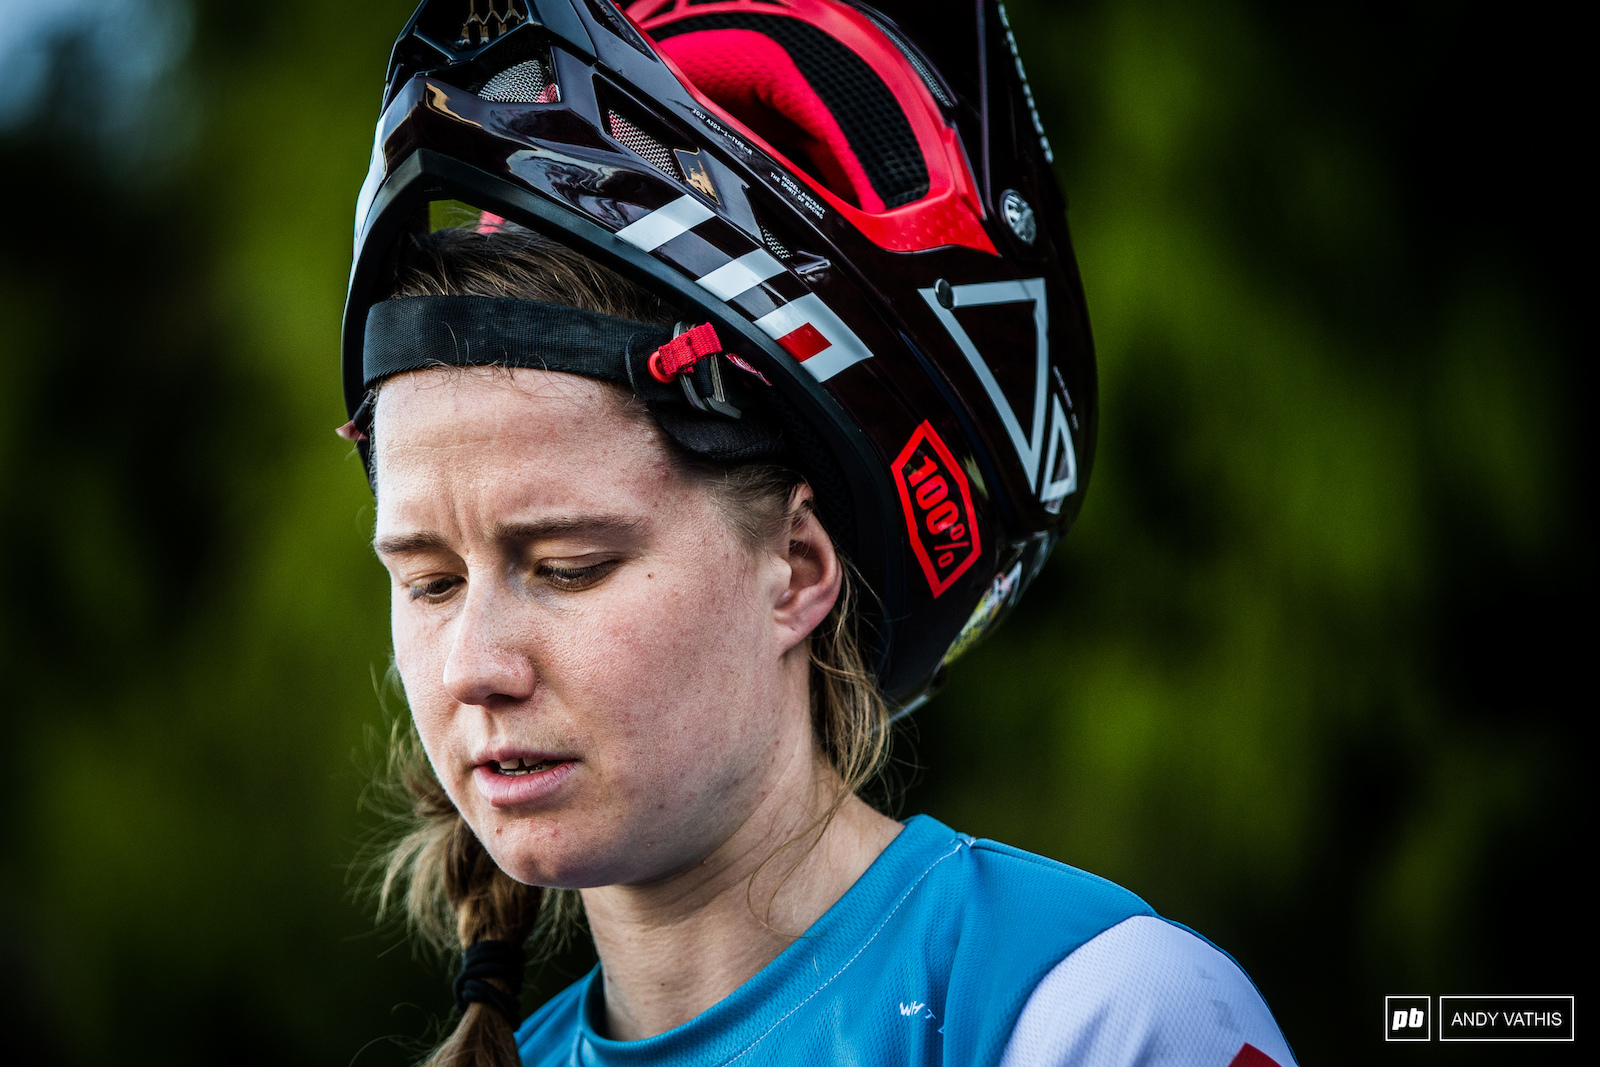 Miranda Miller is another multidisciplined rider competing in the EWS.